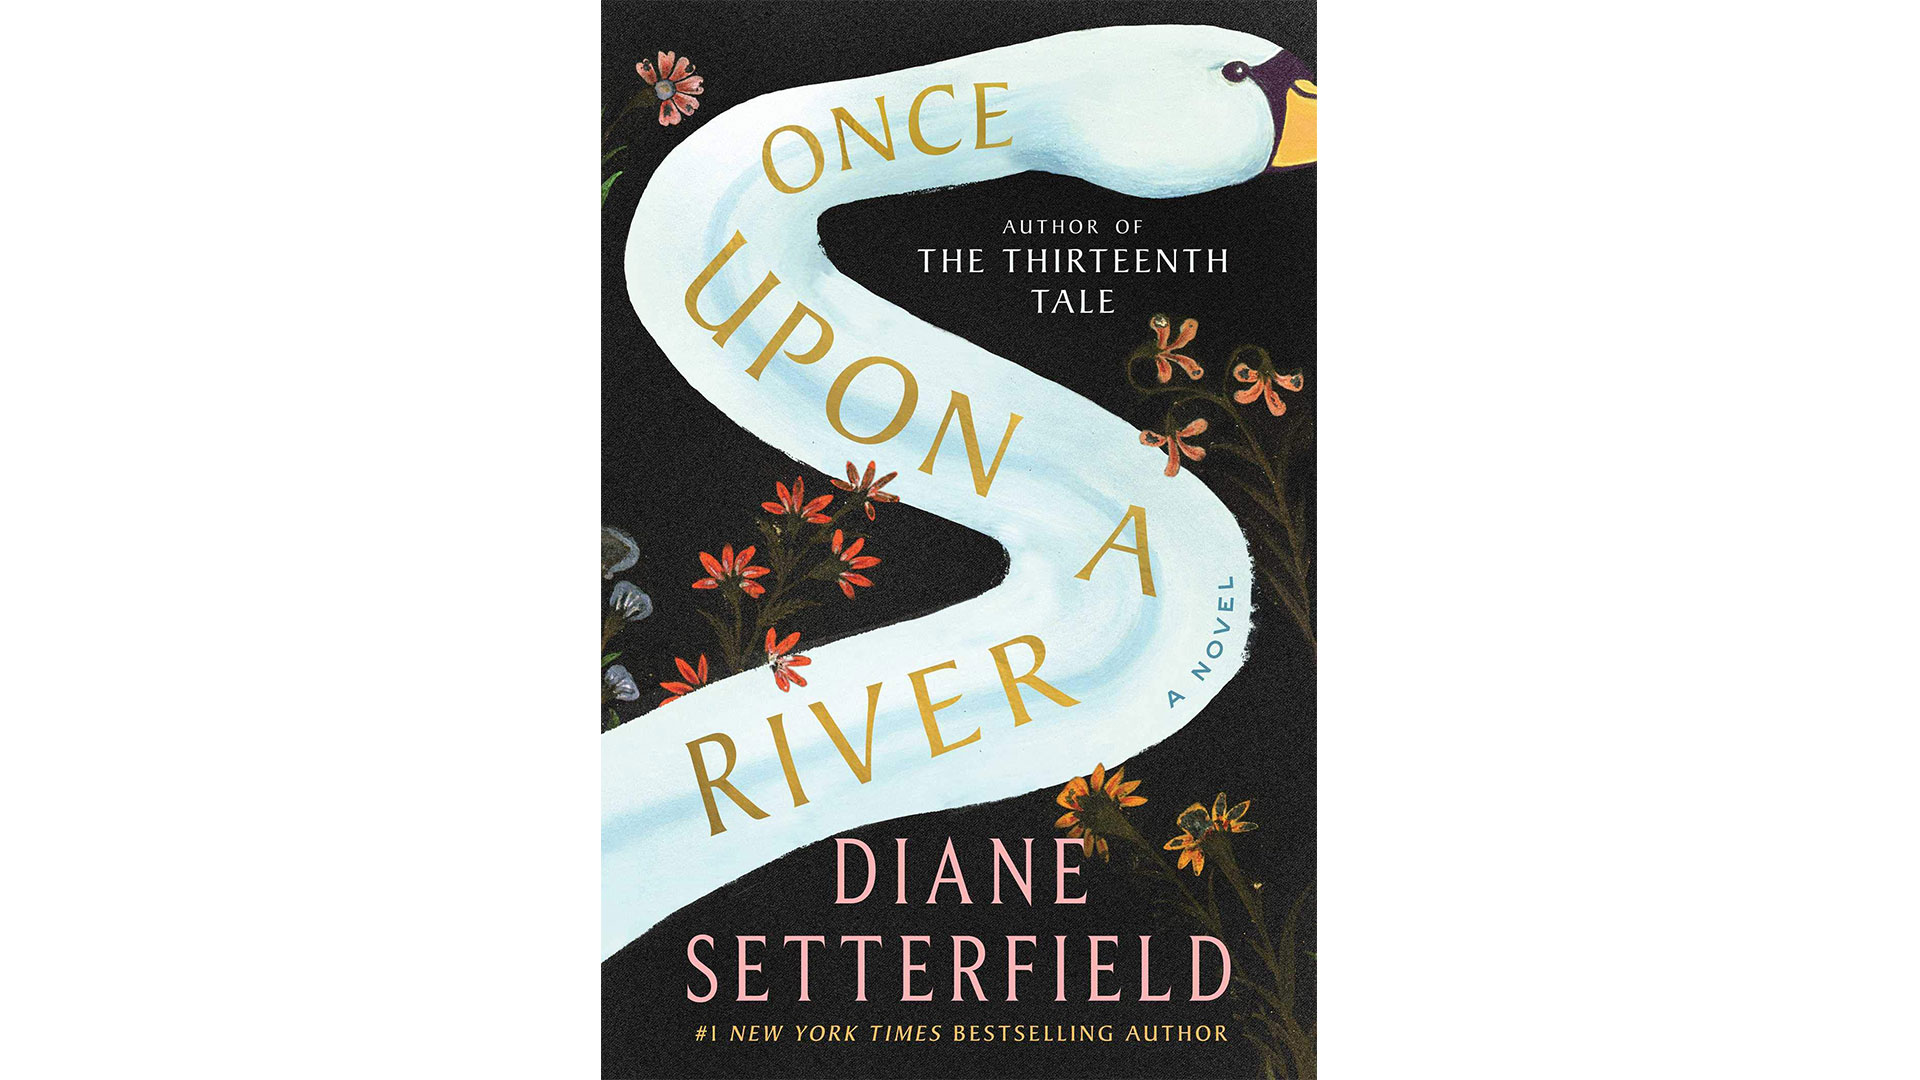 7.  Once Upon a River  by Diane Setterfield